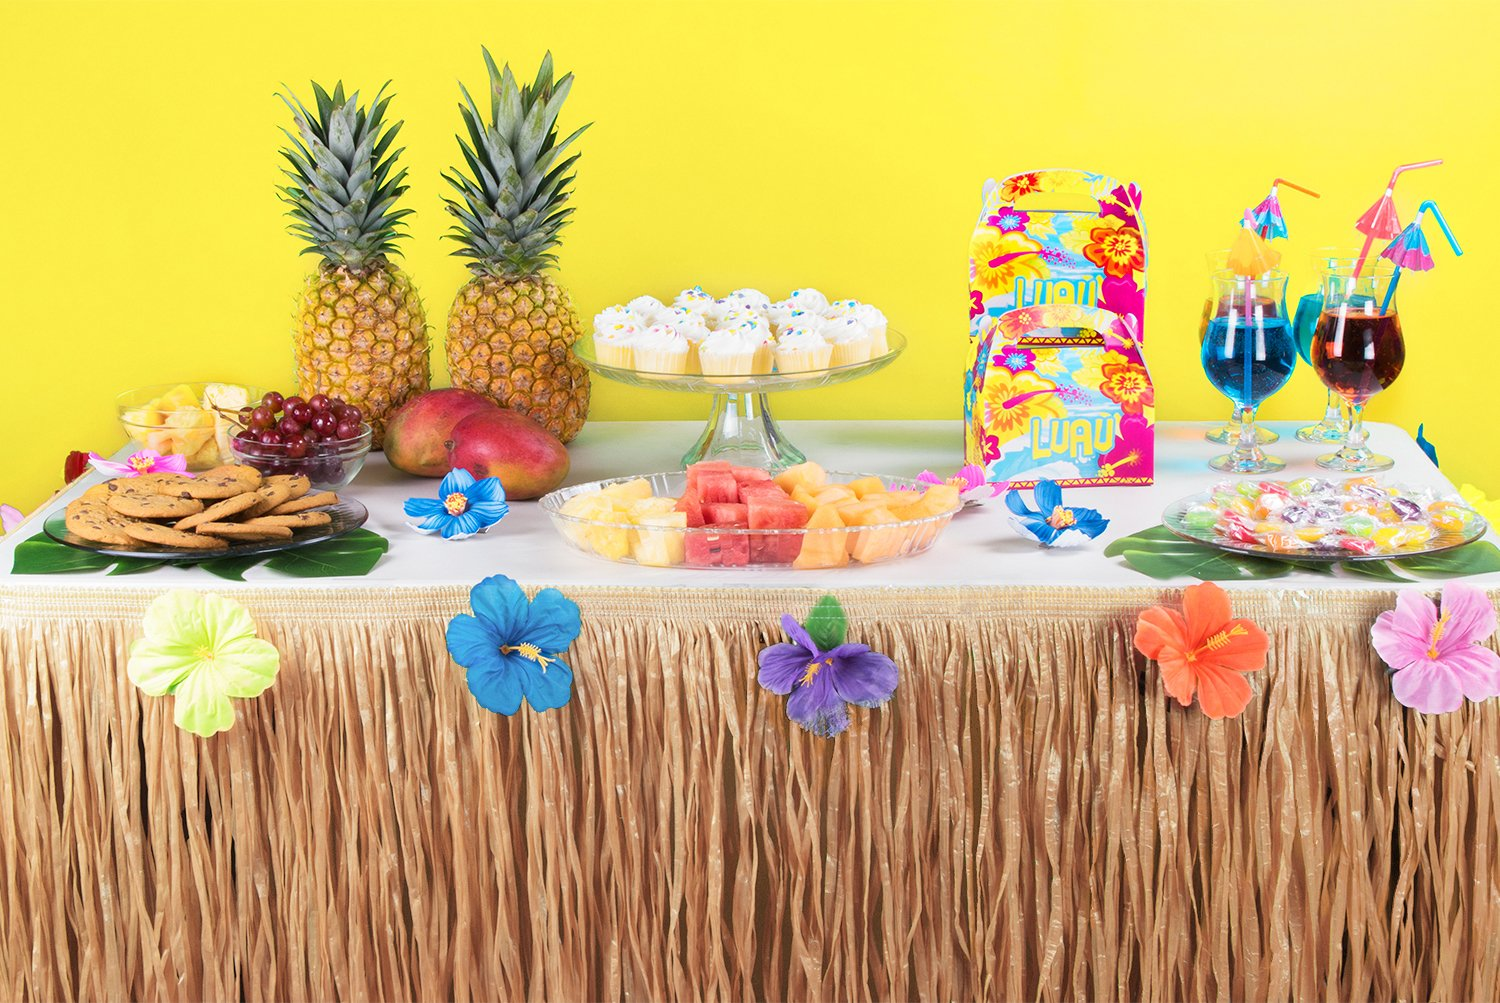 Hawaiian Luau Hibiscus Natural Color String & Colorful Sproilk Faux Flowers Table Hula Grass Skirt for Party Decoration, Events, Birthdays, Celebration (1 Pack) by Super Z Outlet (Image #2)